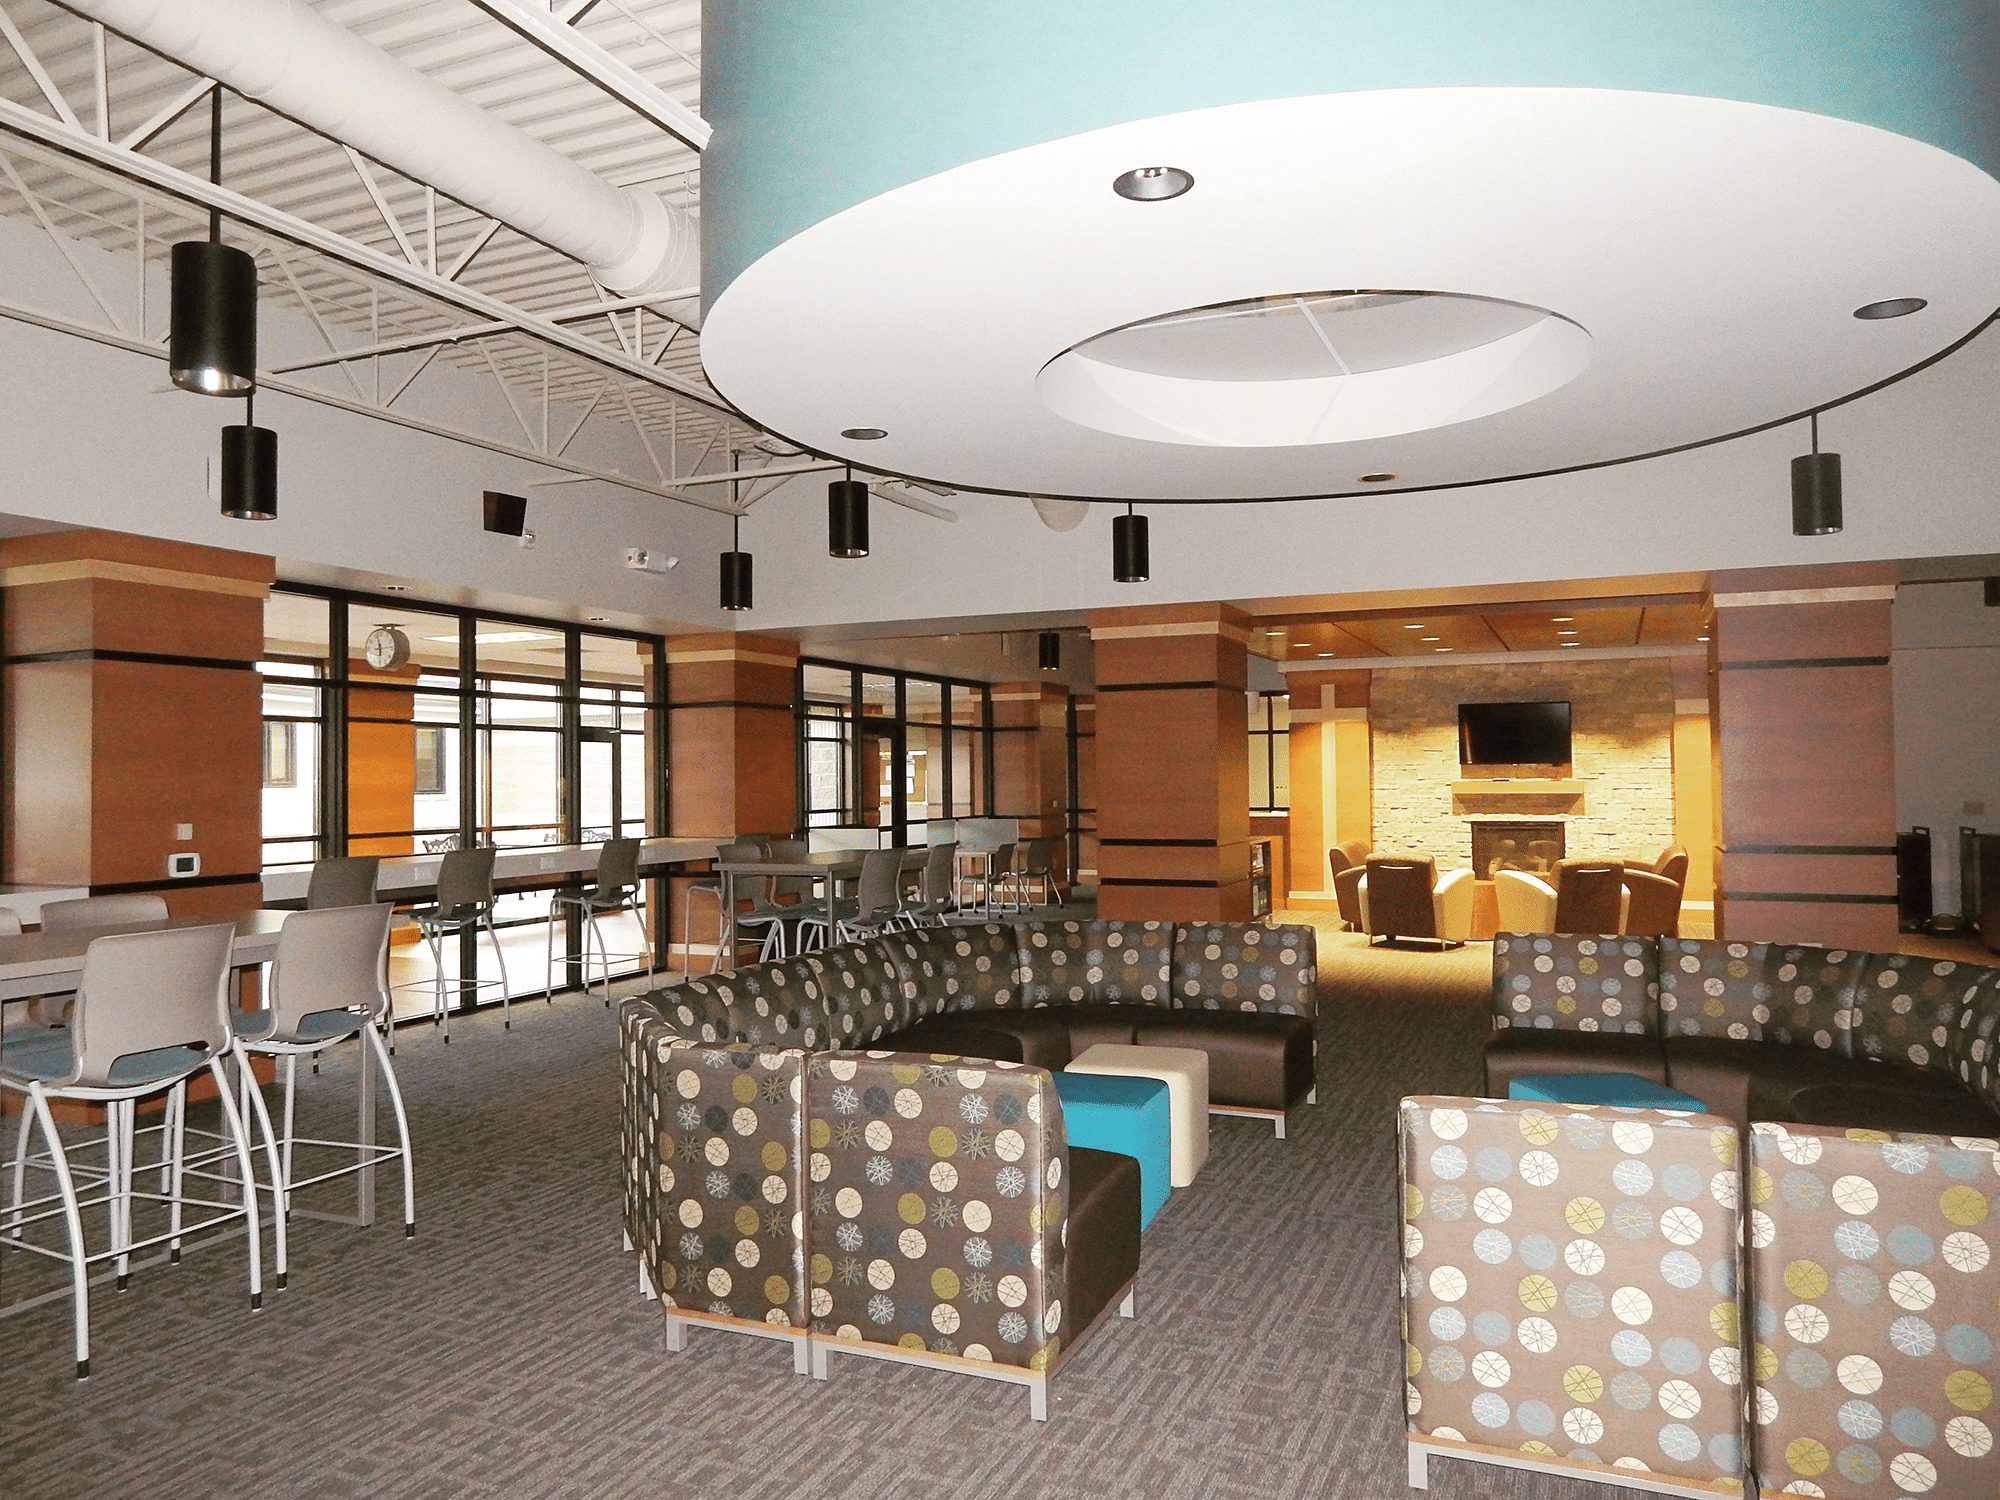 End result of 2014 remodel of Central Wisconsin Christian School